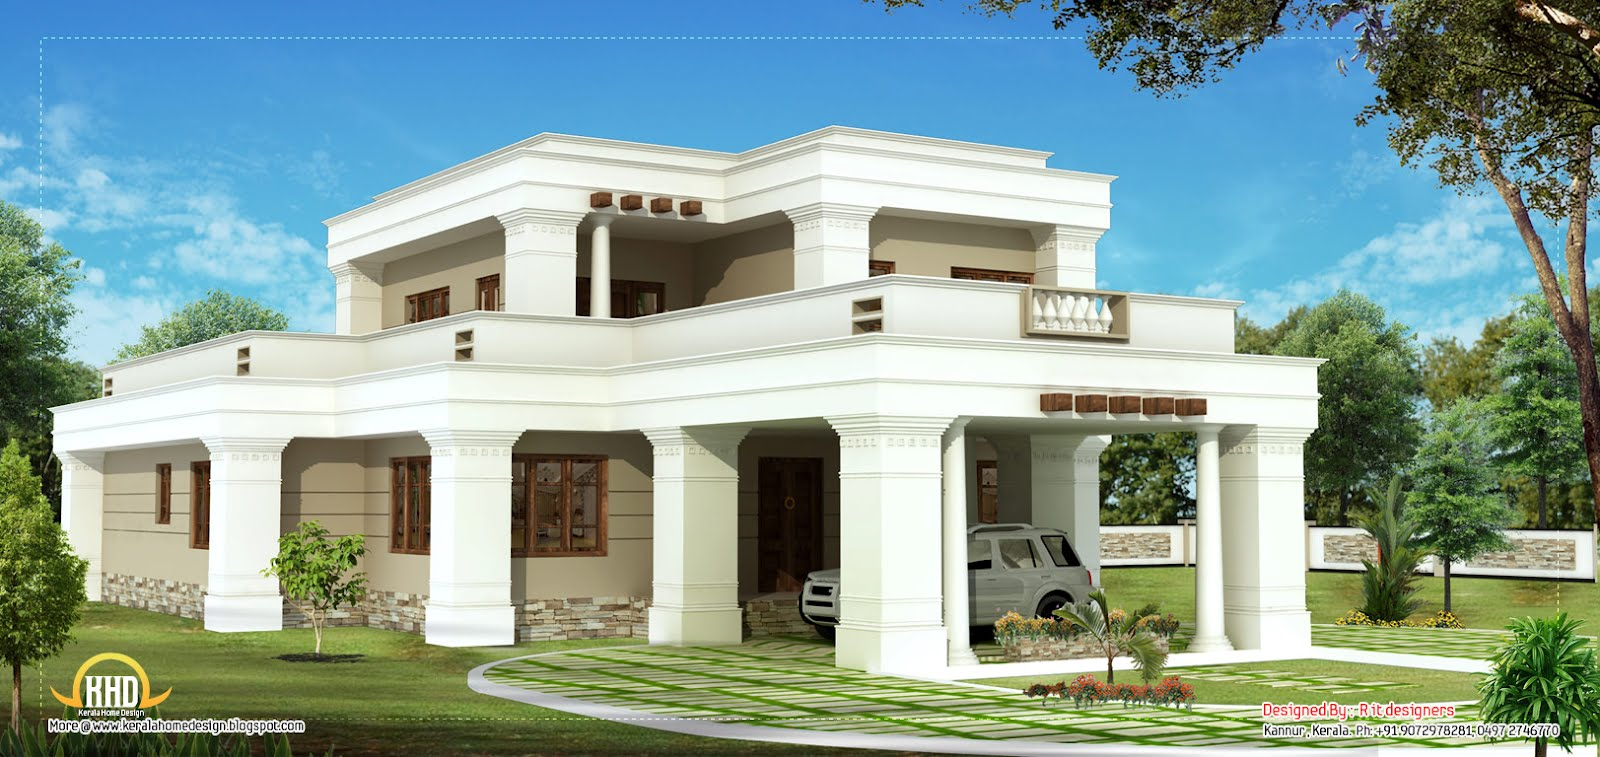 Double story square home design 2615 sq ft kerala for Double story house design